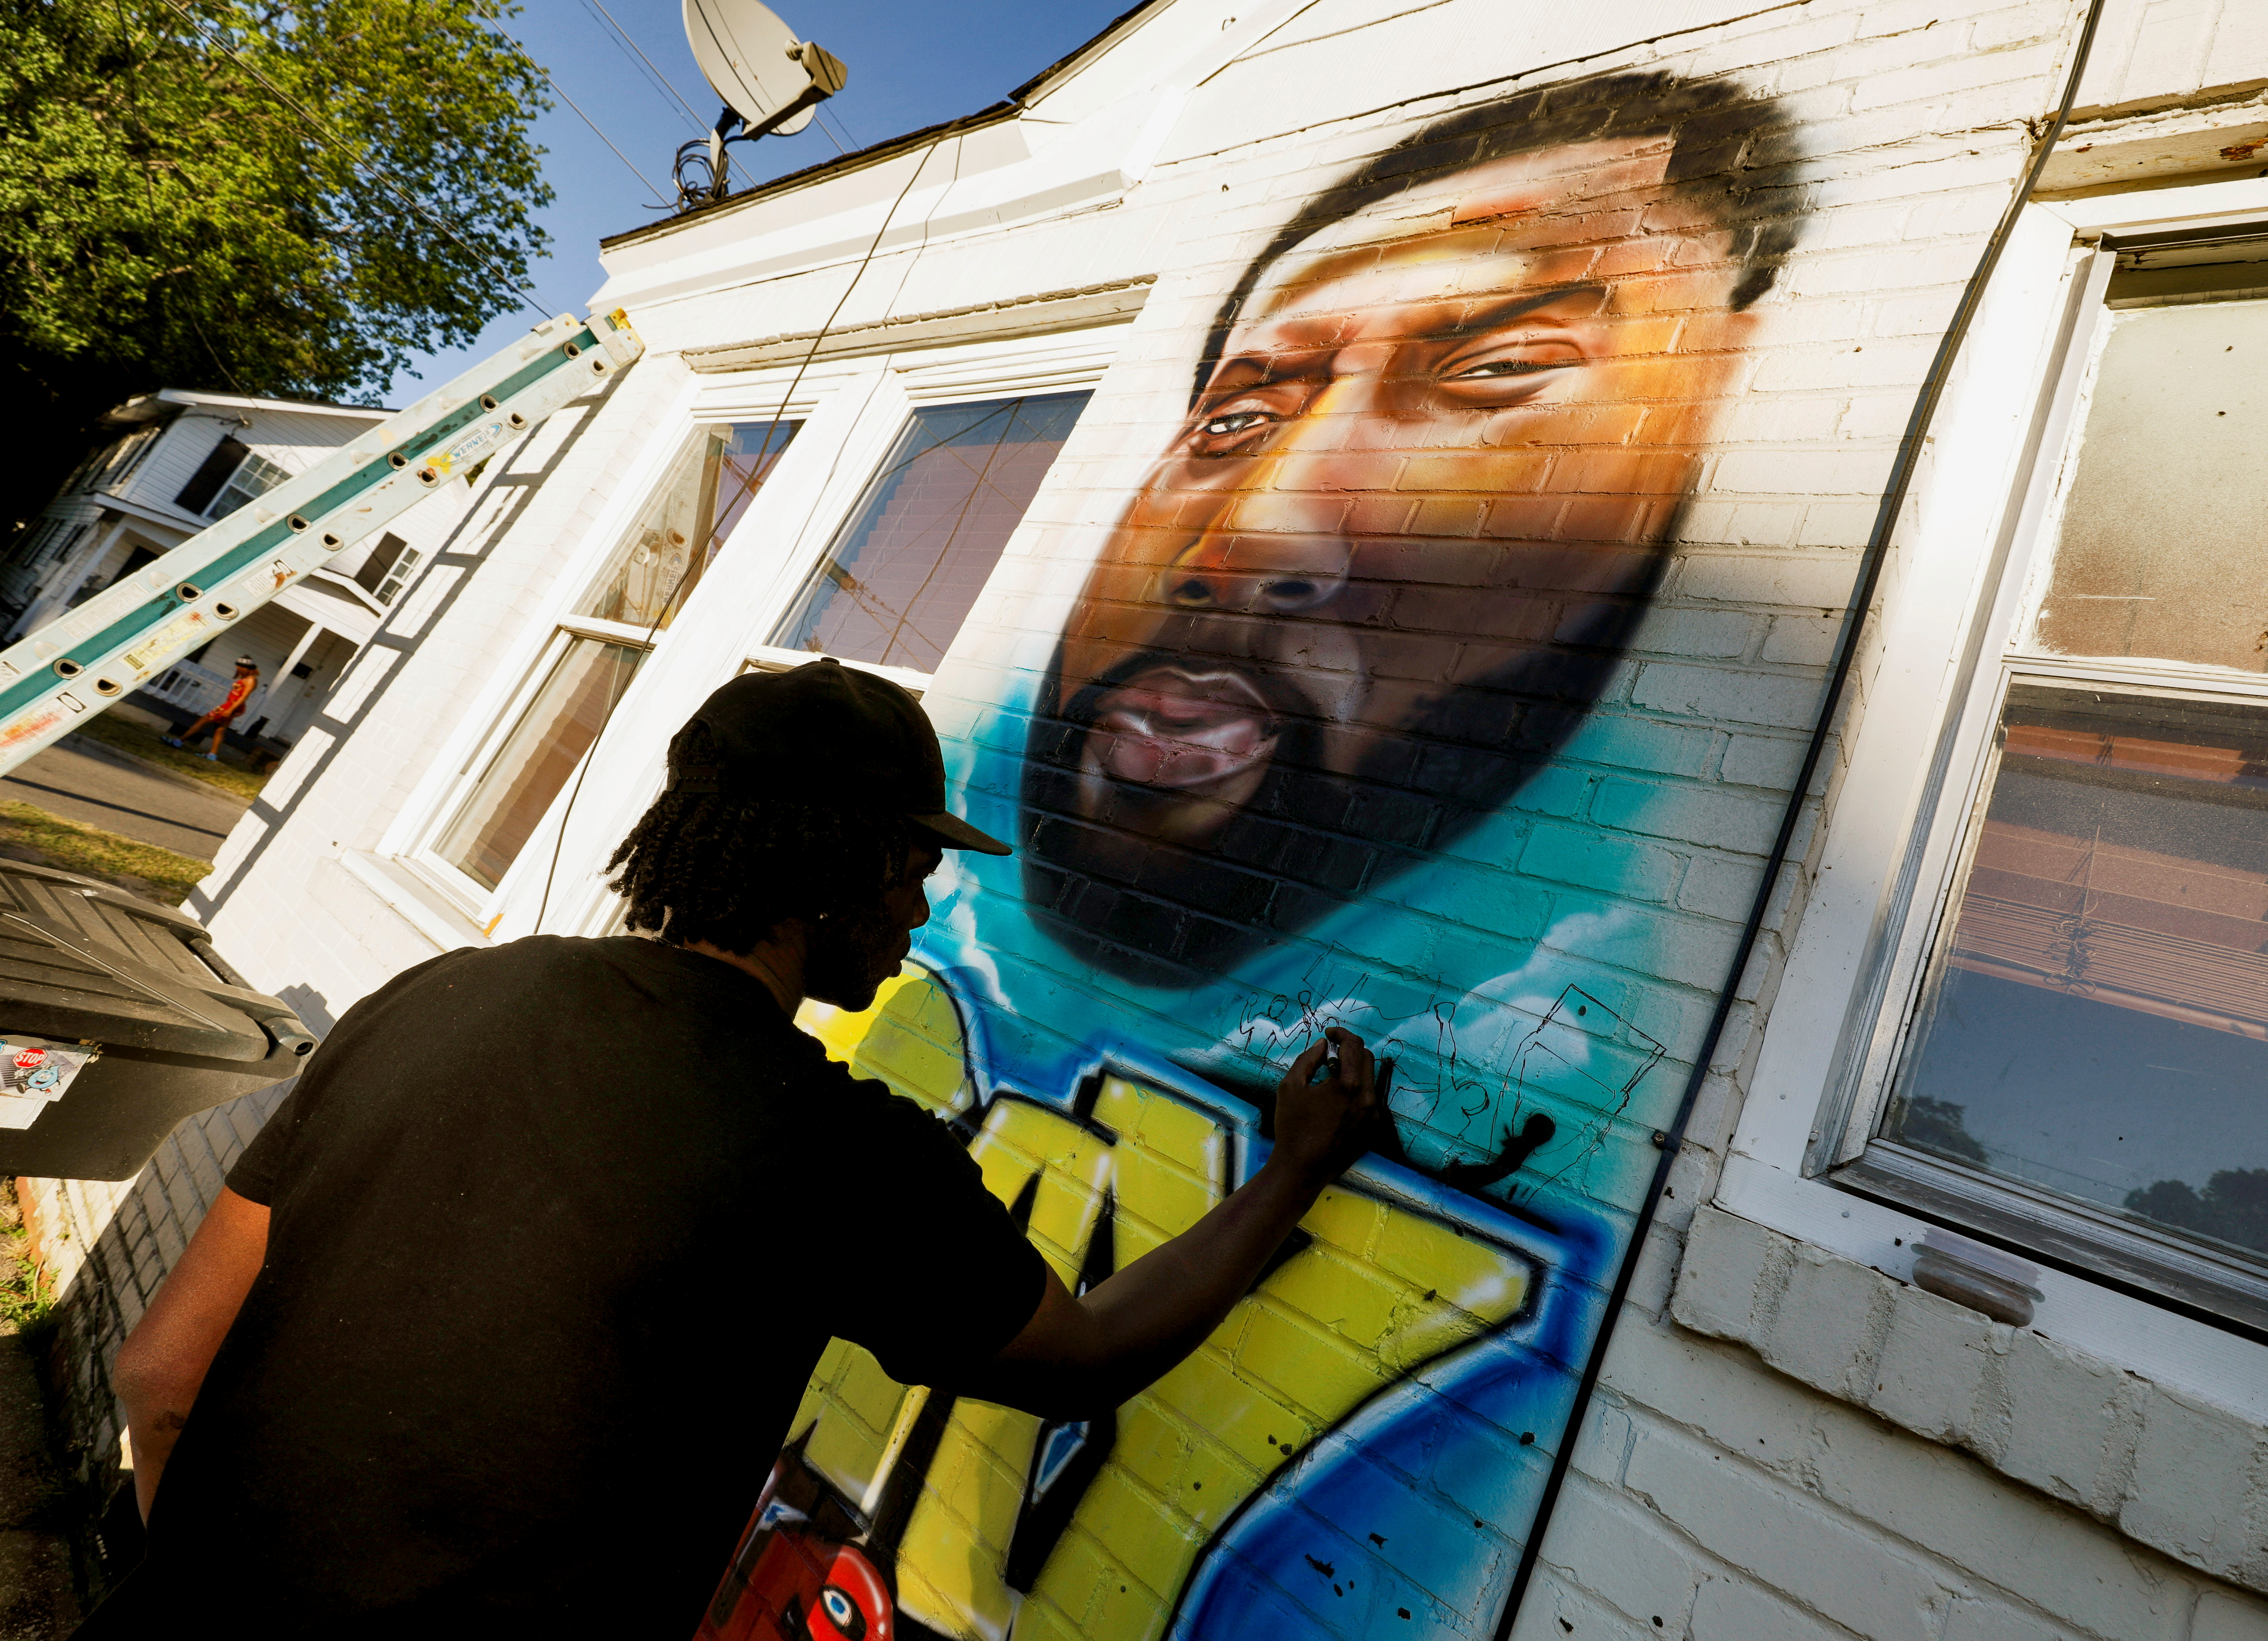 Ulysses Edwards, a friend of Andrew Brown Jr., finishes a mural in his honor at the site where sheriff's deputies killed Brown in Elizabeth City, North Carolina, U.S. May 1, 2021. REUTERS/Jonathan Drake